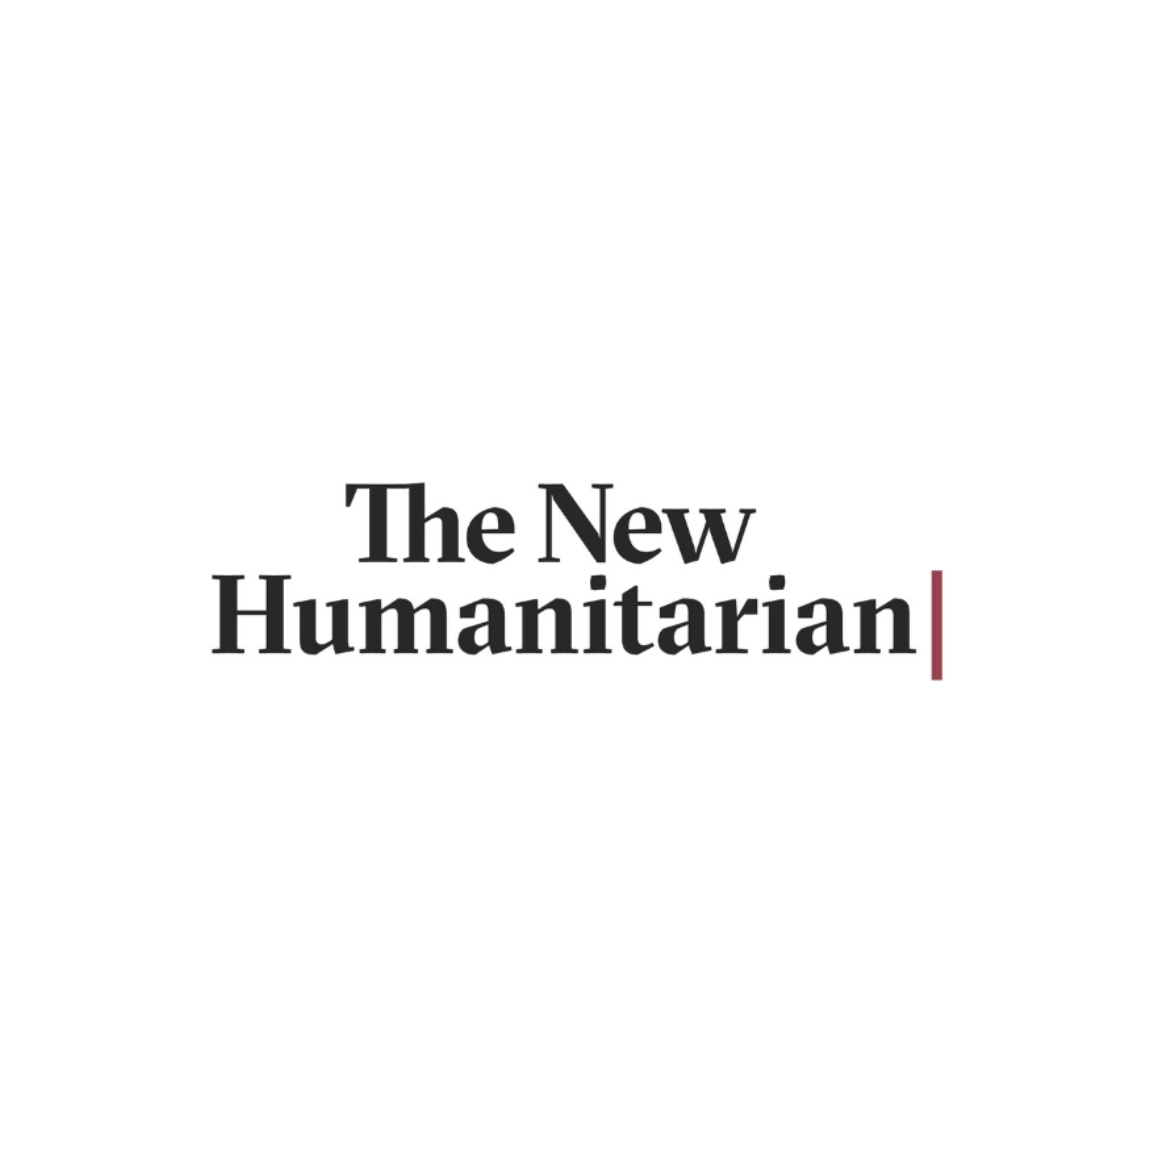 The New Humanitarian Logo by Joost Bastmeijer square.png